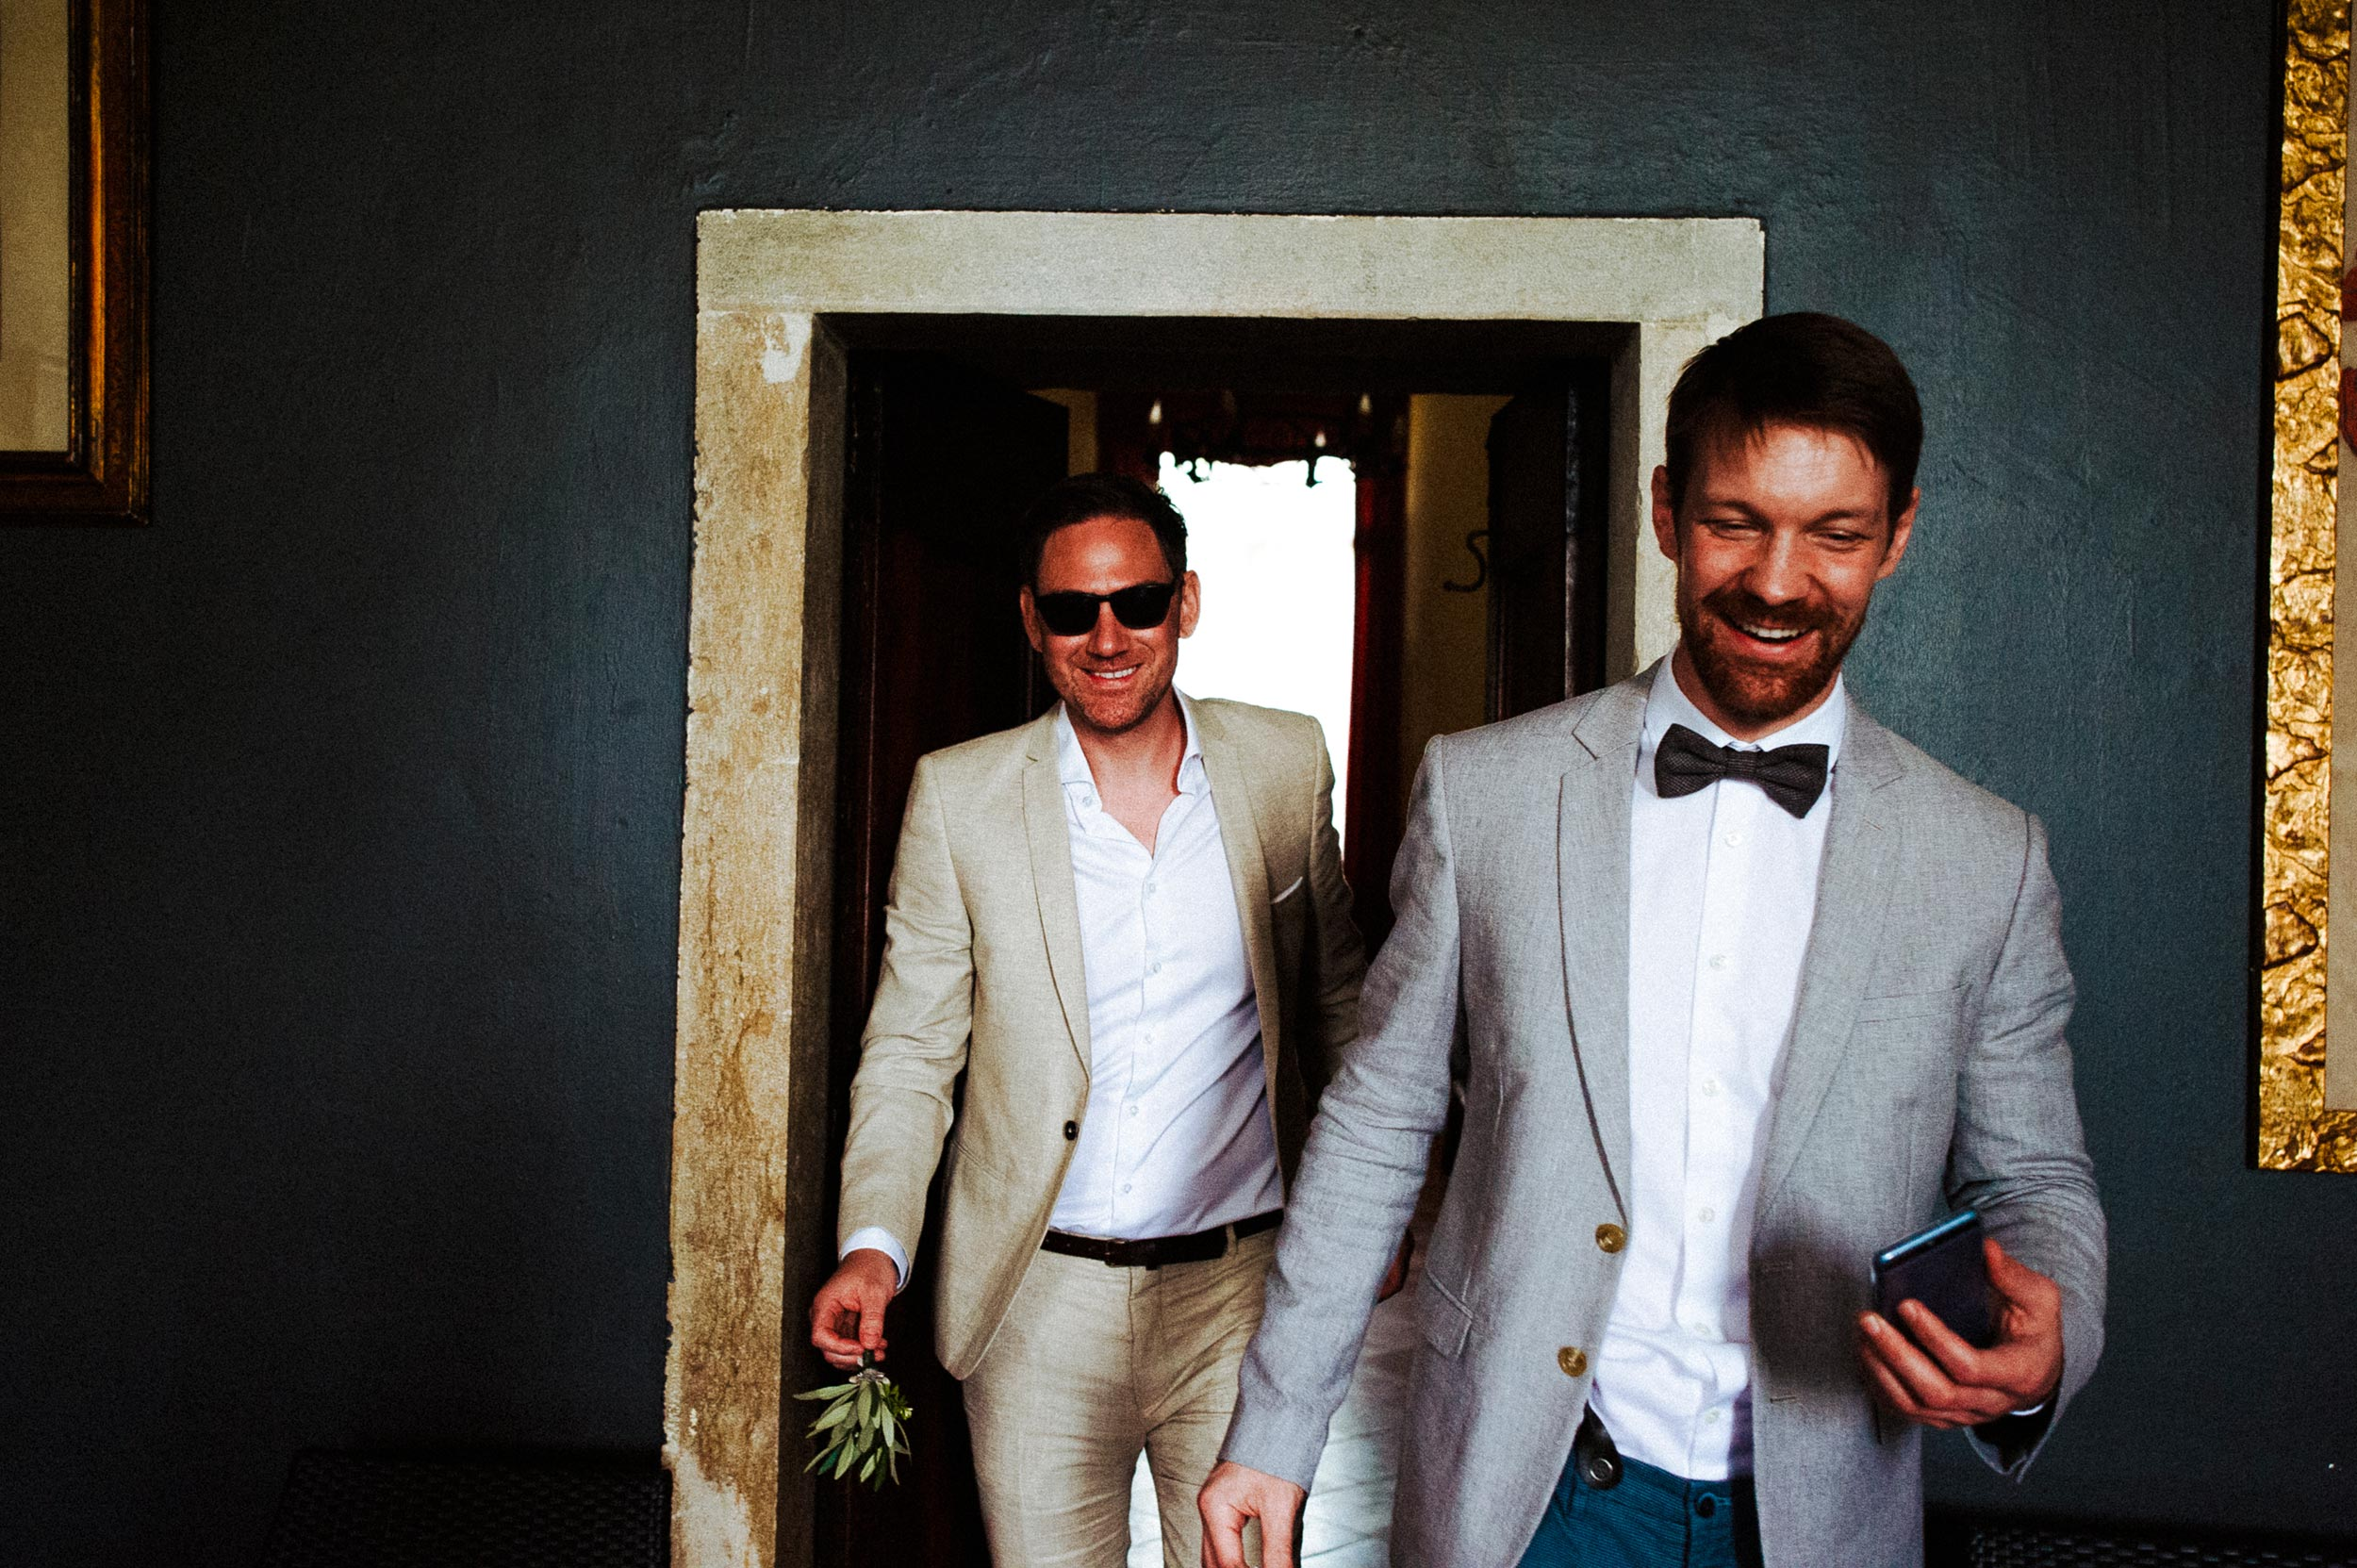 The Groom and his Best Man getting ready in Villa Godi Malinverni Wedding in Italy by Alessandro Avenali